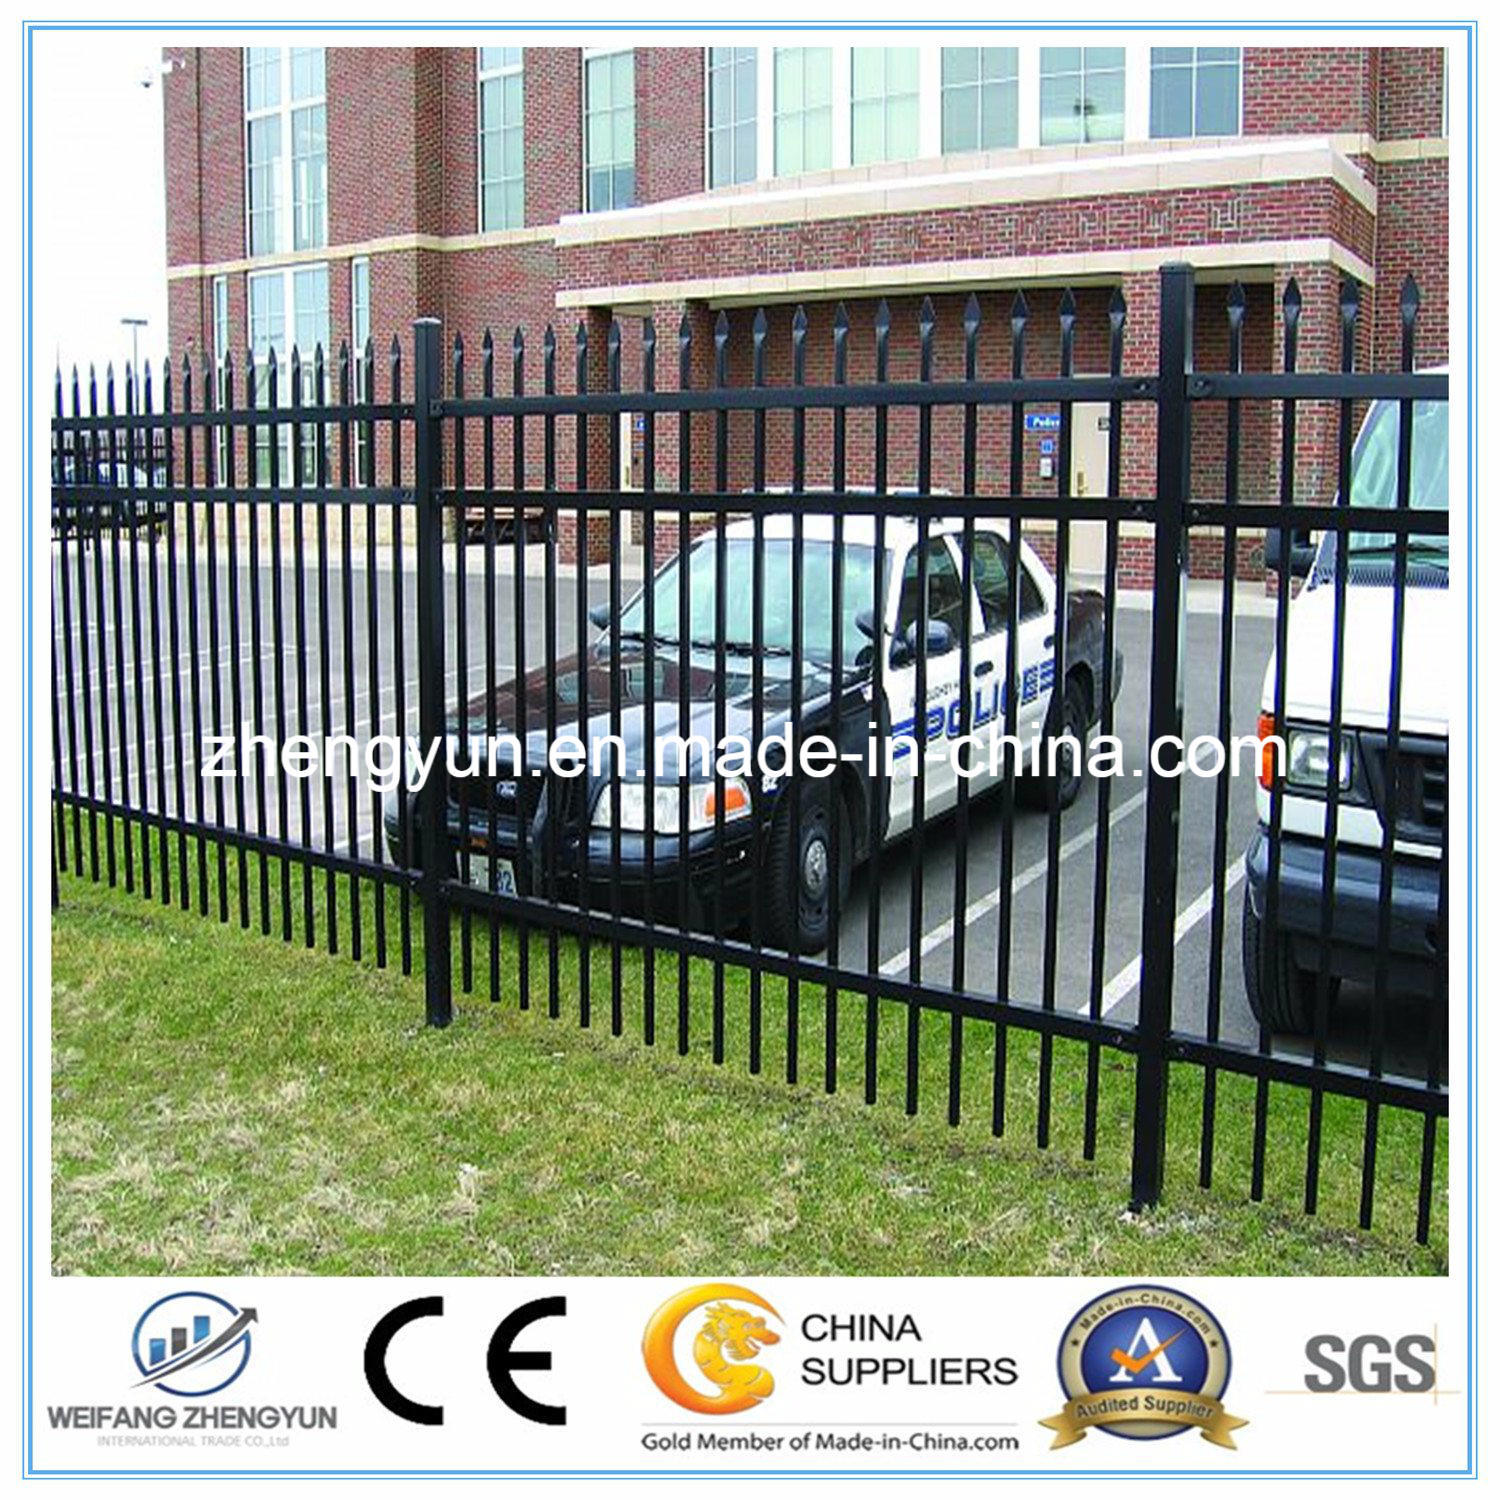 Wholesale Security Fence / Wrought Iron Fence